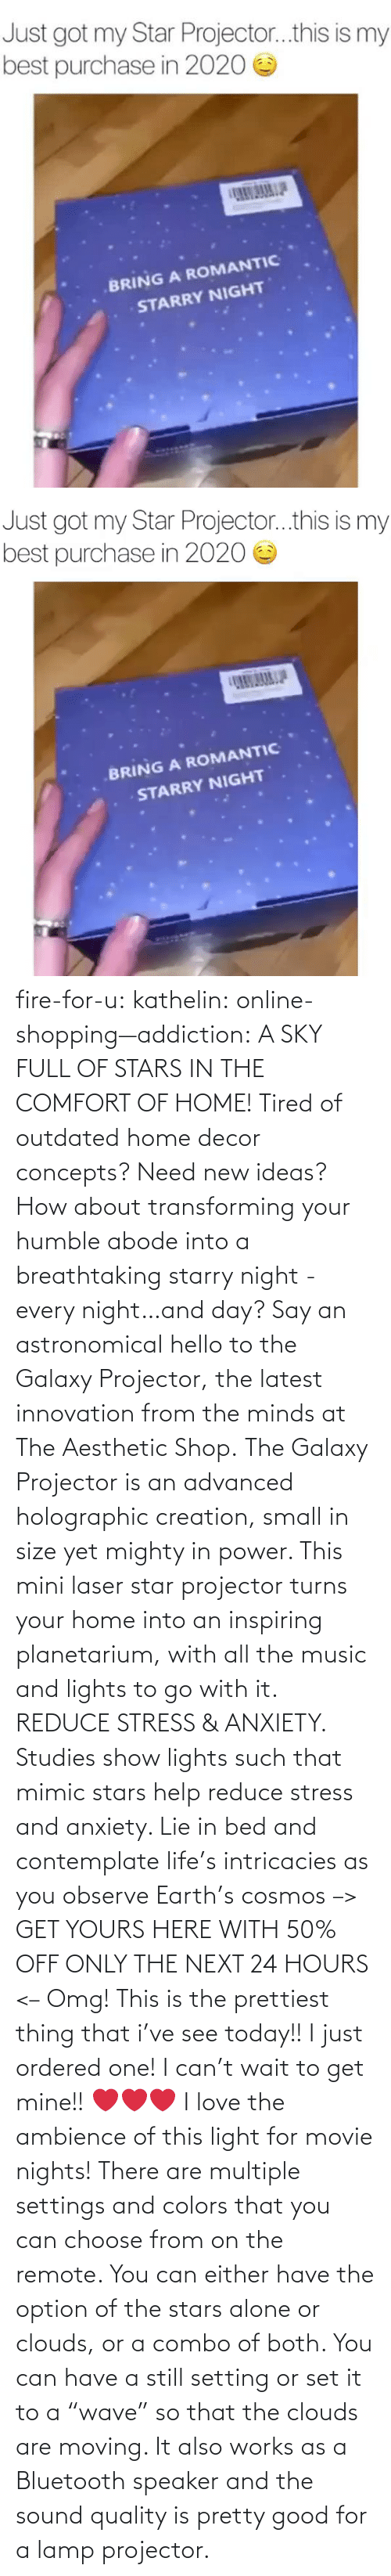 "Outdated: fire-for-u:  kathelin: online-shopping—addiction:  A SKY FULL OF STARS IN THE COMFORT OF HOME! Tired of outdated home decor concepts? Need new ideas? How about transforming your humble abode into a breathtaking starry night - every night…and day? Say an astronomical hello to the Galaxy Projector, the latest innovation from the minds at The Aesthetic Shop. The Galaxy Projector is an advanced holographic creation, small in size yet mighty in power. This mini laser star projector turns your home into an inspiring planetarium, with all the music and lights to go with it. REDUCE STRESS & ANXIETY. Studies show lights such that mimic stars help reduce stress and anxiety. Lie in bed and contemplate life's intricacies as you observe Earth's cosmos  –> GET YOURS HERE WITH 50% OFF ONLY THE NEXT 24 HOURS <–   Omg! This is the prettiest thing that i've see today!! I just ordered one! I can't wait to get mine!! ❤️️❤️️❤️️  I love the ambience of this light for movie nights! There are multiple settings and colors that you can choose from on the remote. You can either have the option of the stars alone or clouds, or a combo of both. You can have a still setting or set it to a ""wave"" so that the clouds are moving. It also works as a Bluetooth speaker and the sound quality is pretty good for a lamp projector."